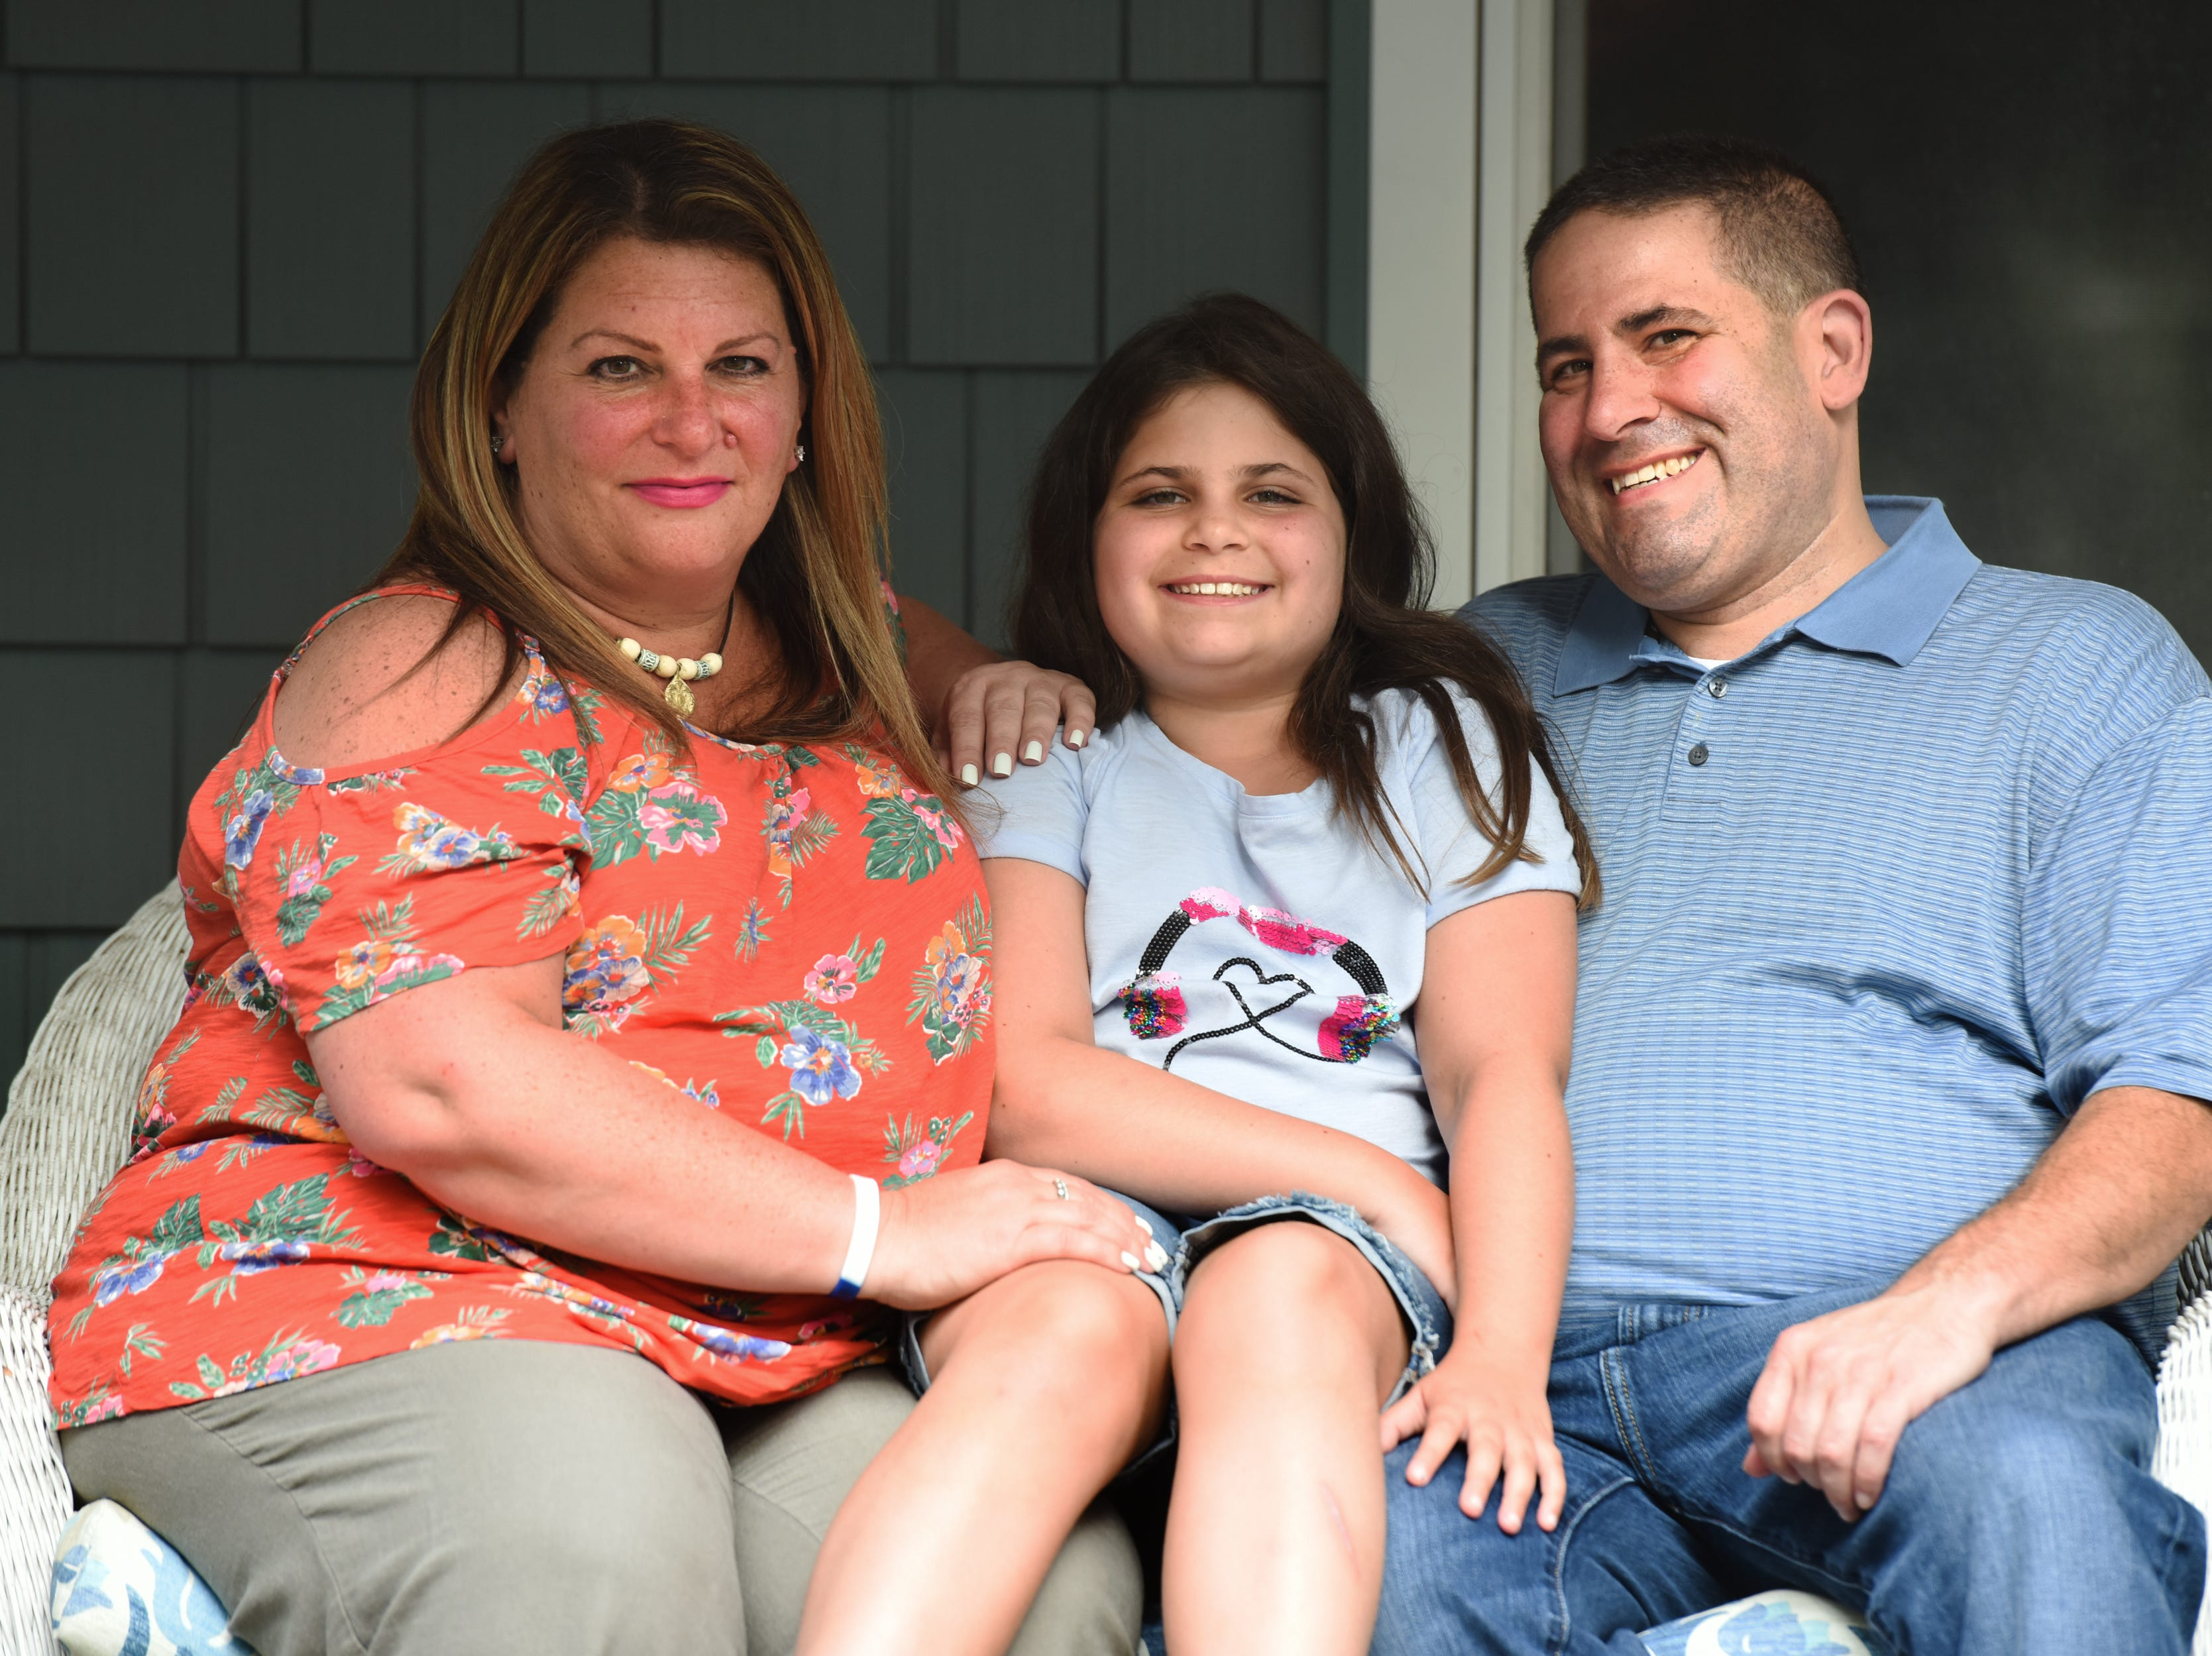 Bella was a chatty tomboy. Then doctors found something mysterious in her brain.